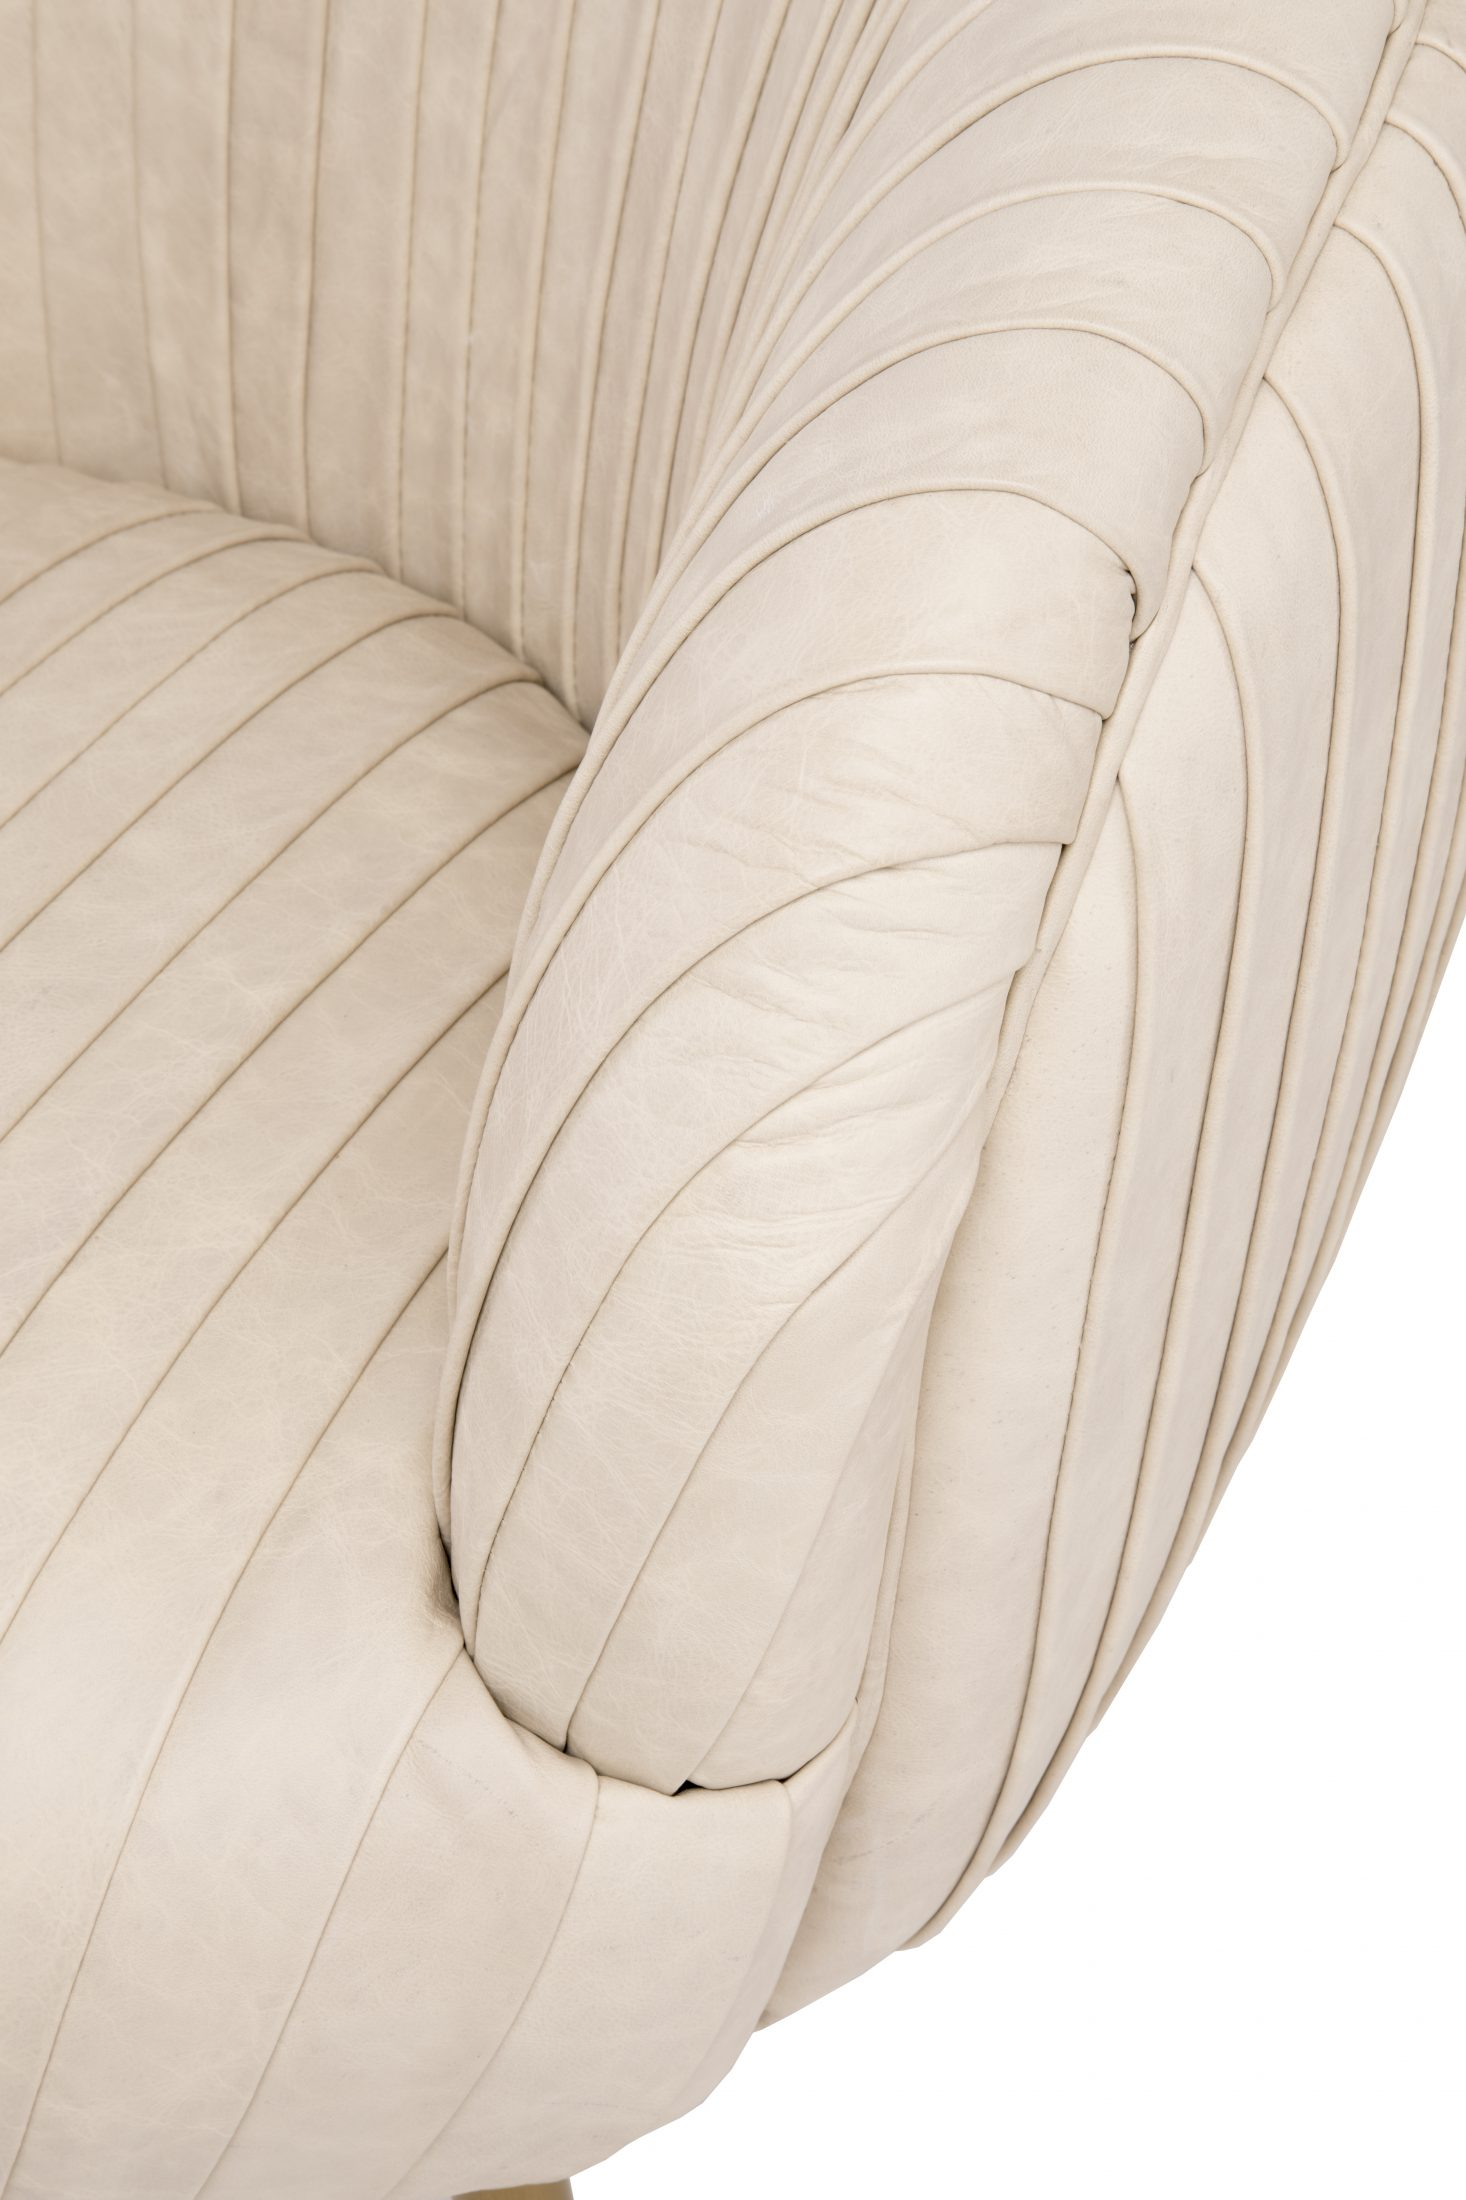 Wondrous Pleated Chair Latte Leather Arden Home Forskolin Free Trial Chair Design Images Forskolin Free Trialorg